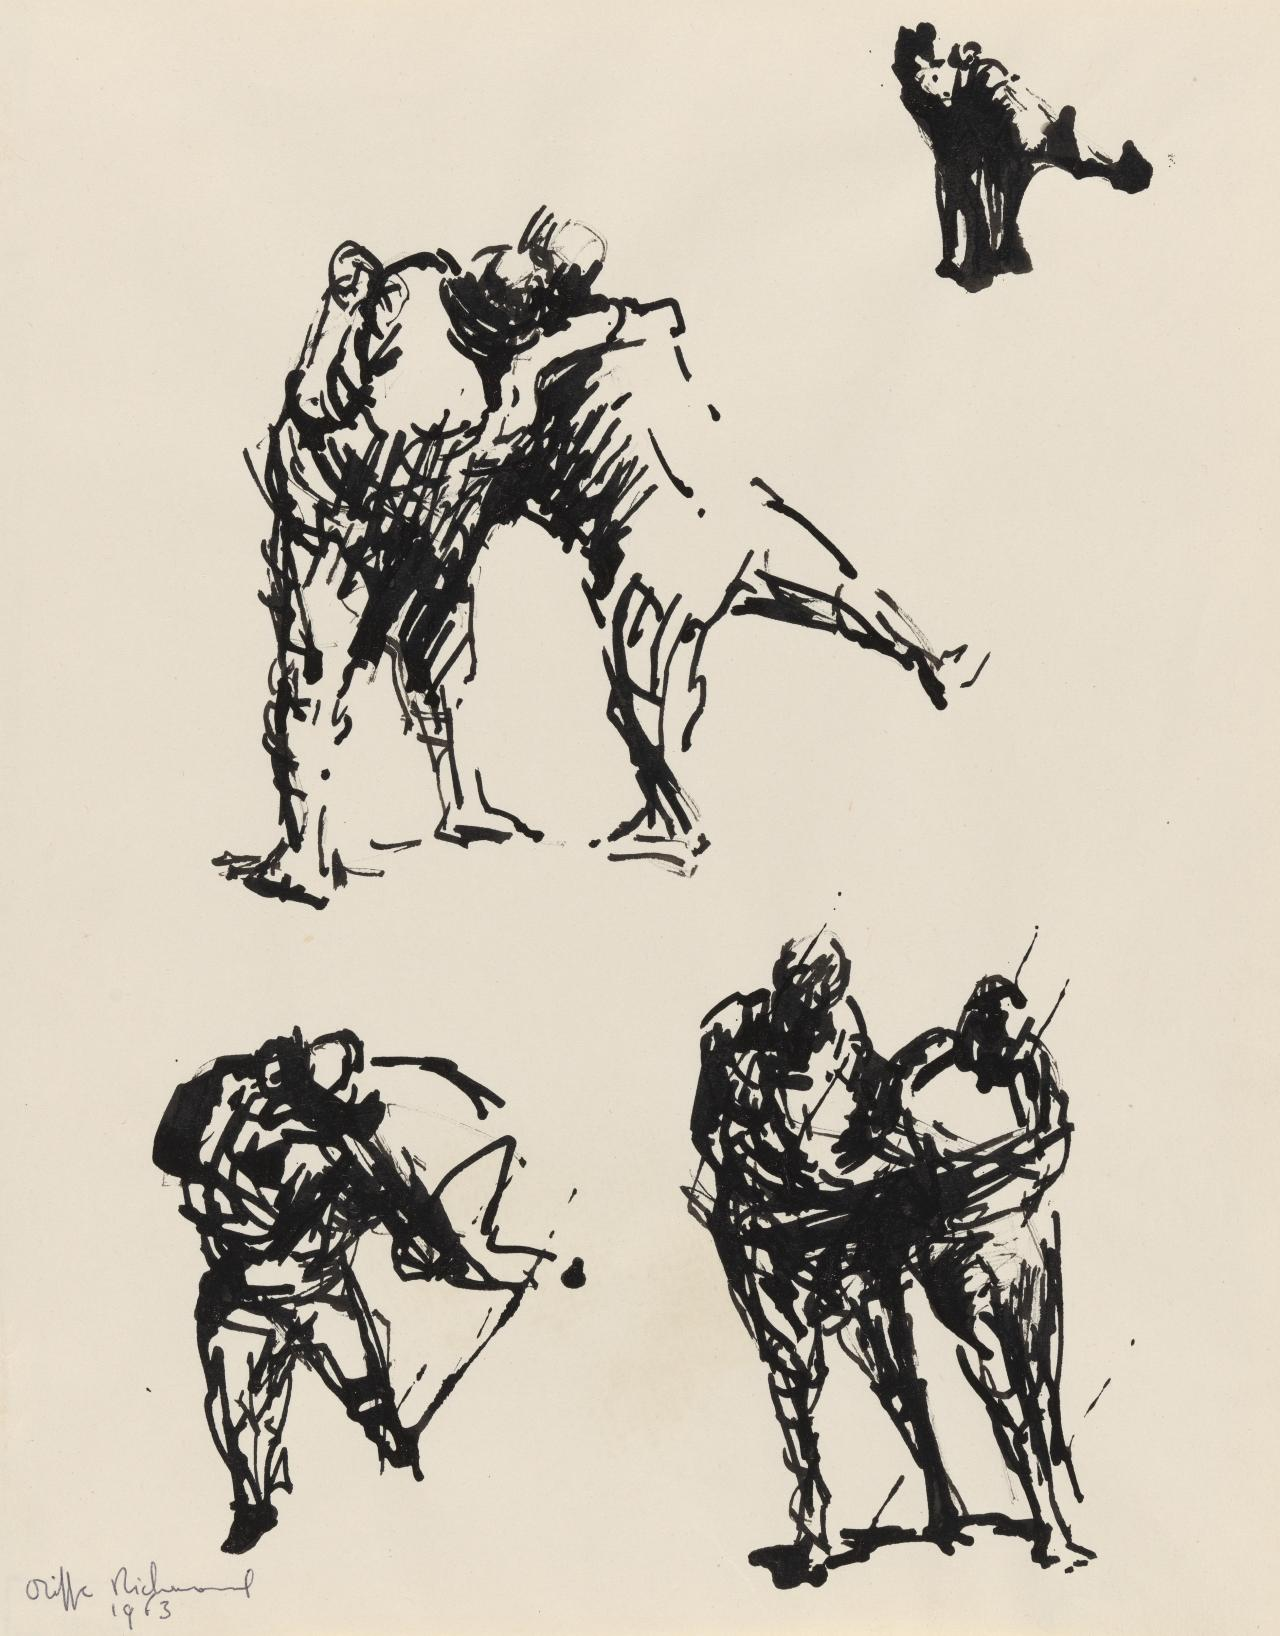 Studies for sculpture - human figures